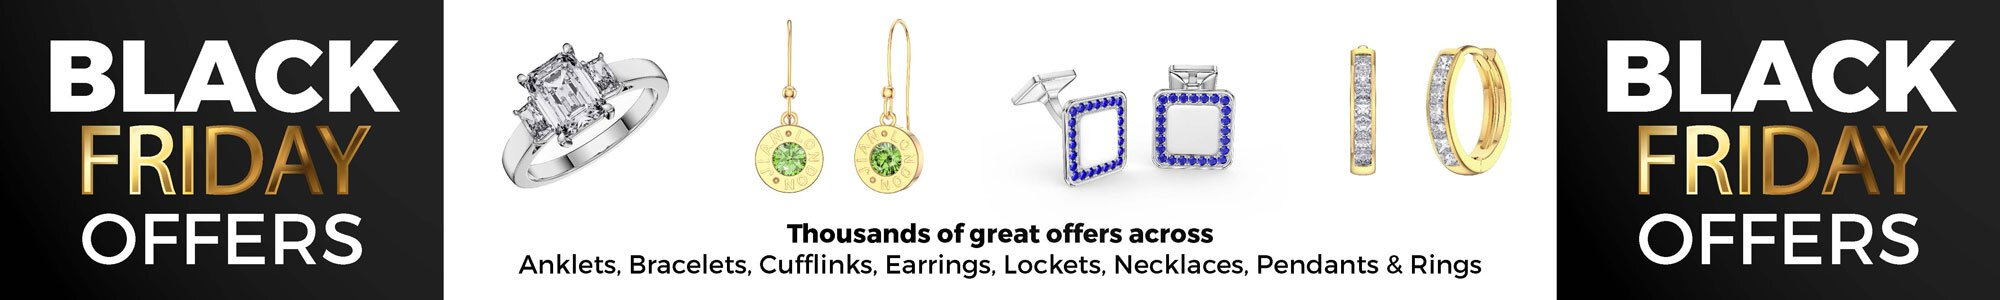 Black Friday Deals - Wide Selection of Earrings, Pendants, Engagement Rings, Bracelets and Necklaces